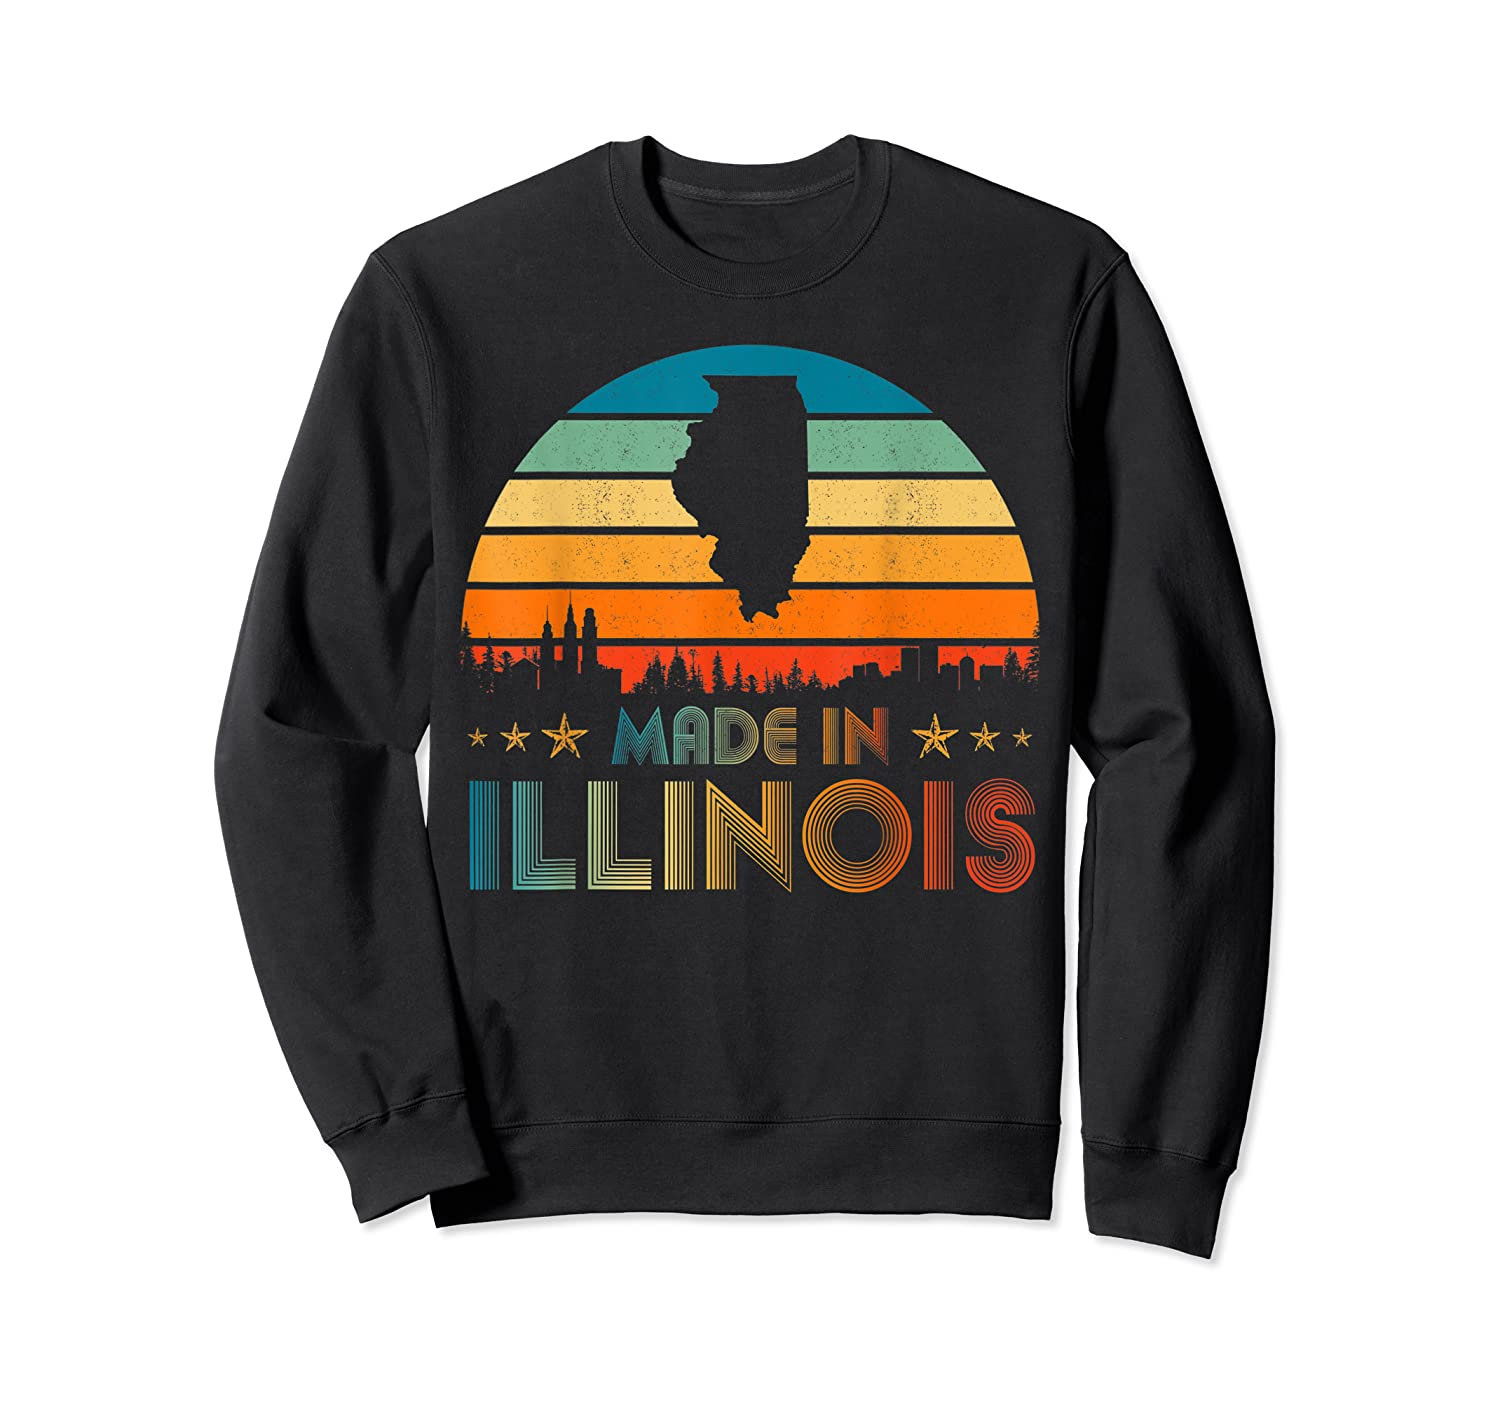 Vintage Made In Illinois Shirts Crewneck Sweater